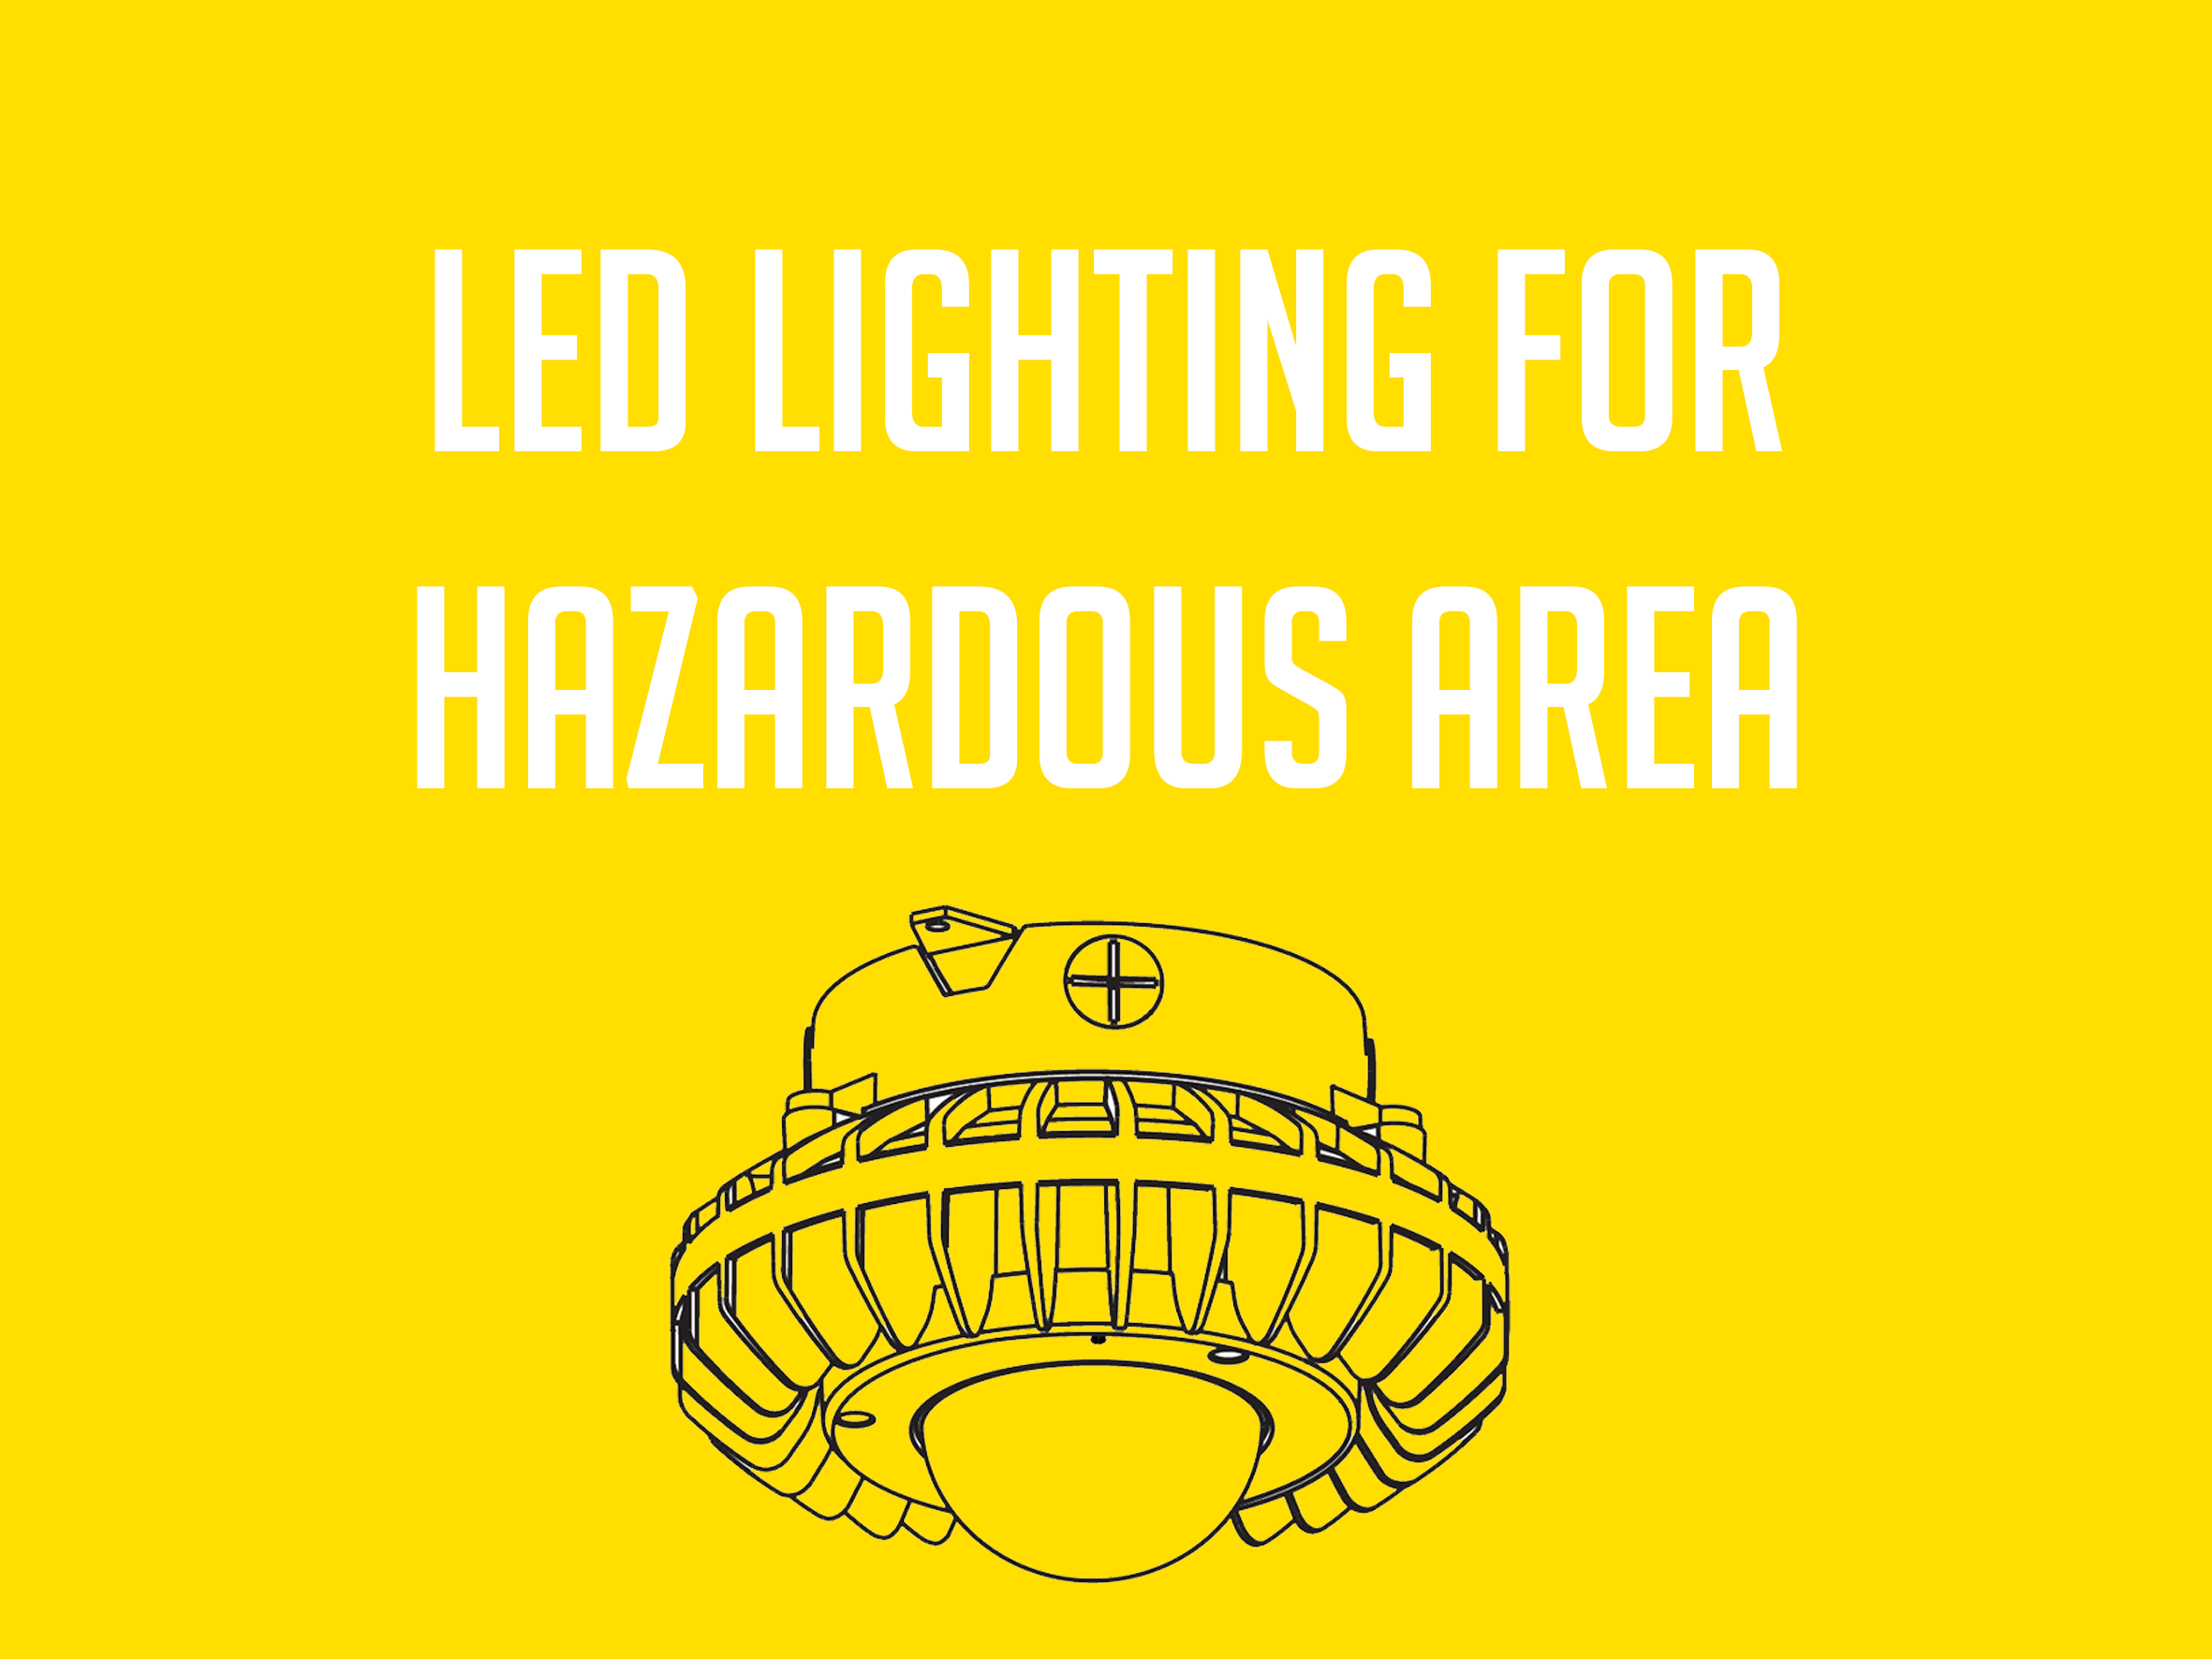 LED LIGHTING FOR HAZARDOUS AREA